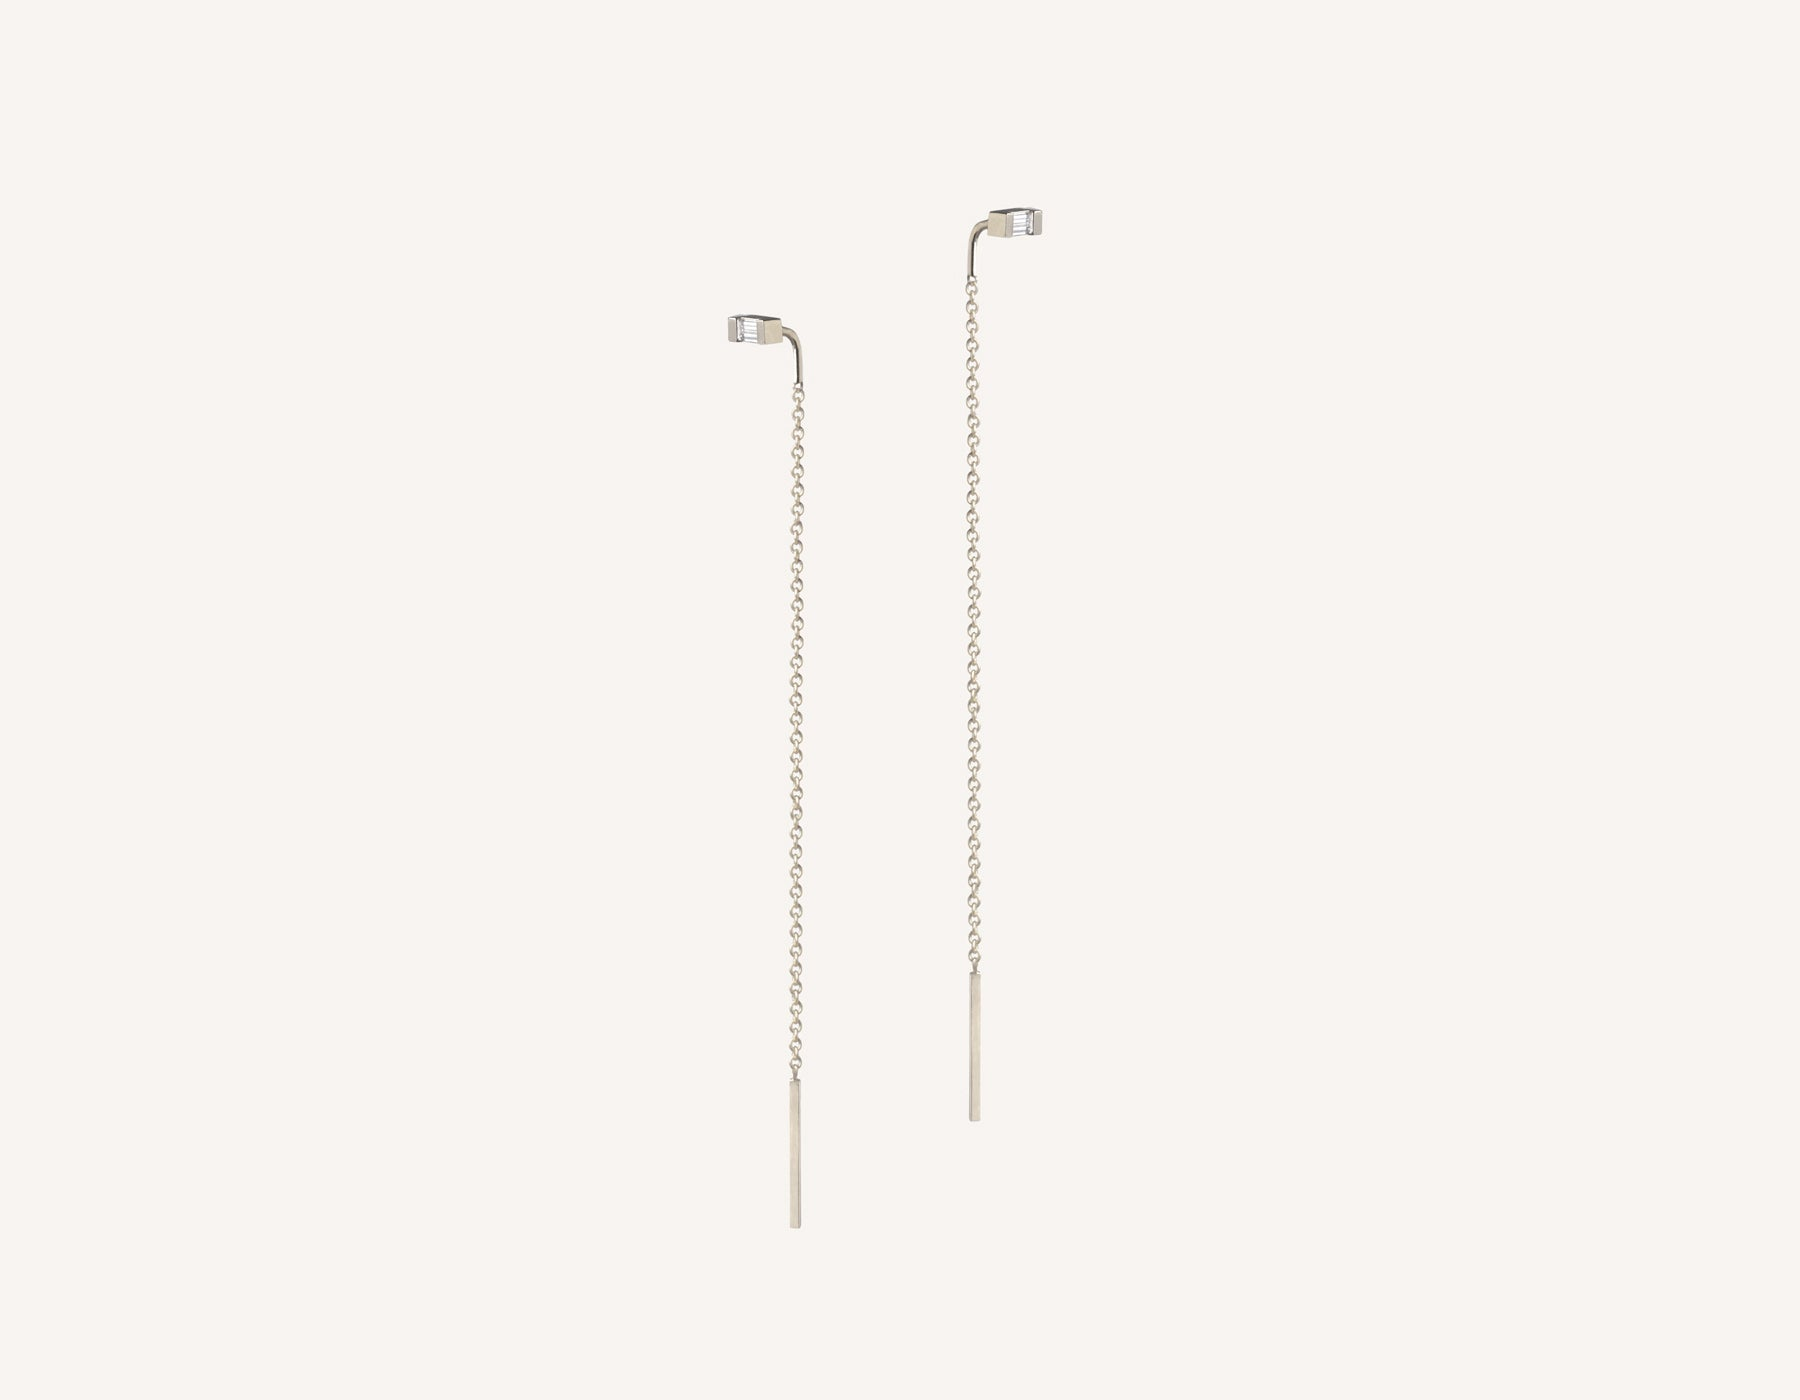 Vrai & oro simple petite 14k solid gold Baguette Diamond Line threader delicate chain earrings, 14K White Gold